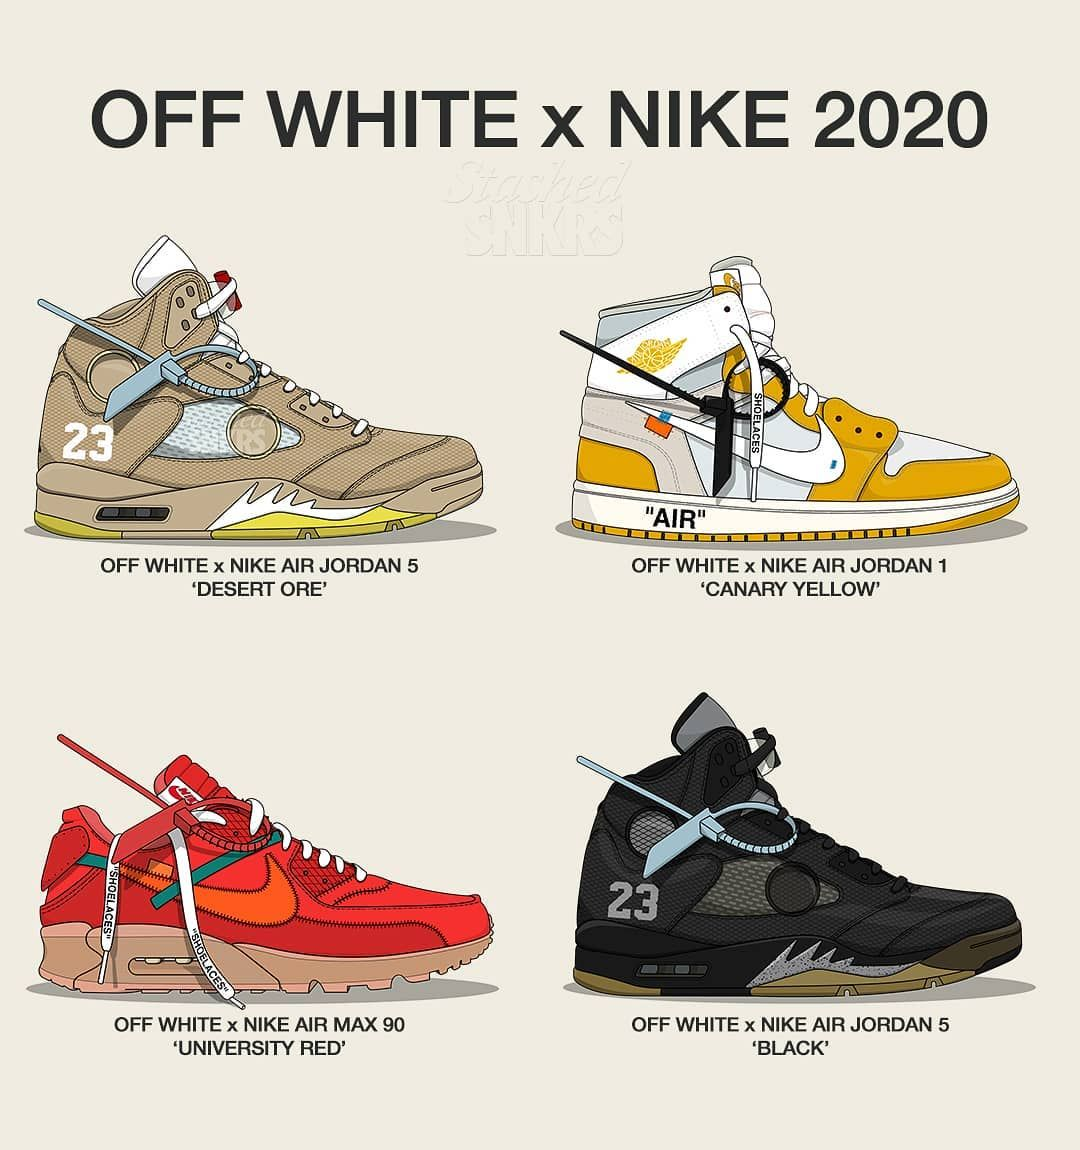 Stashed Snkrs On Instagram This Is The Current Off White X